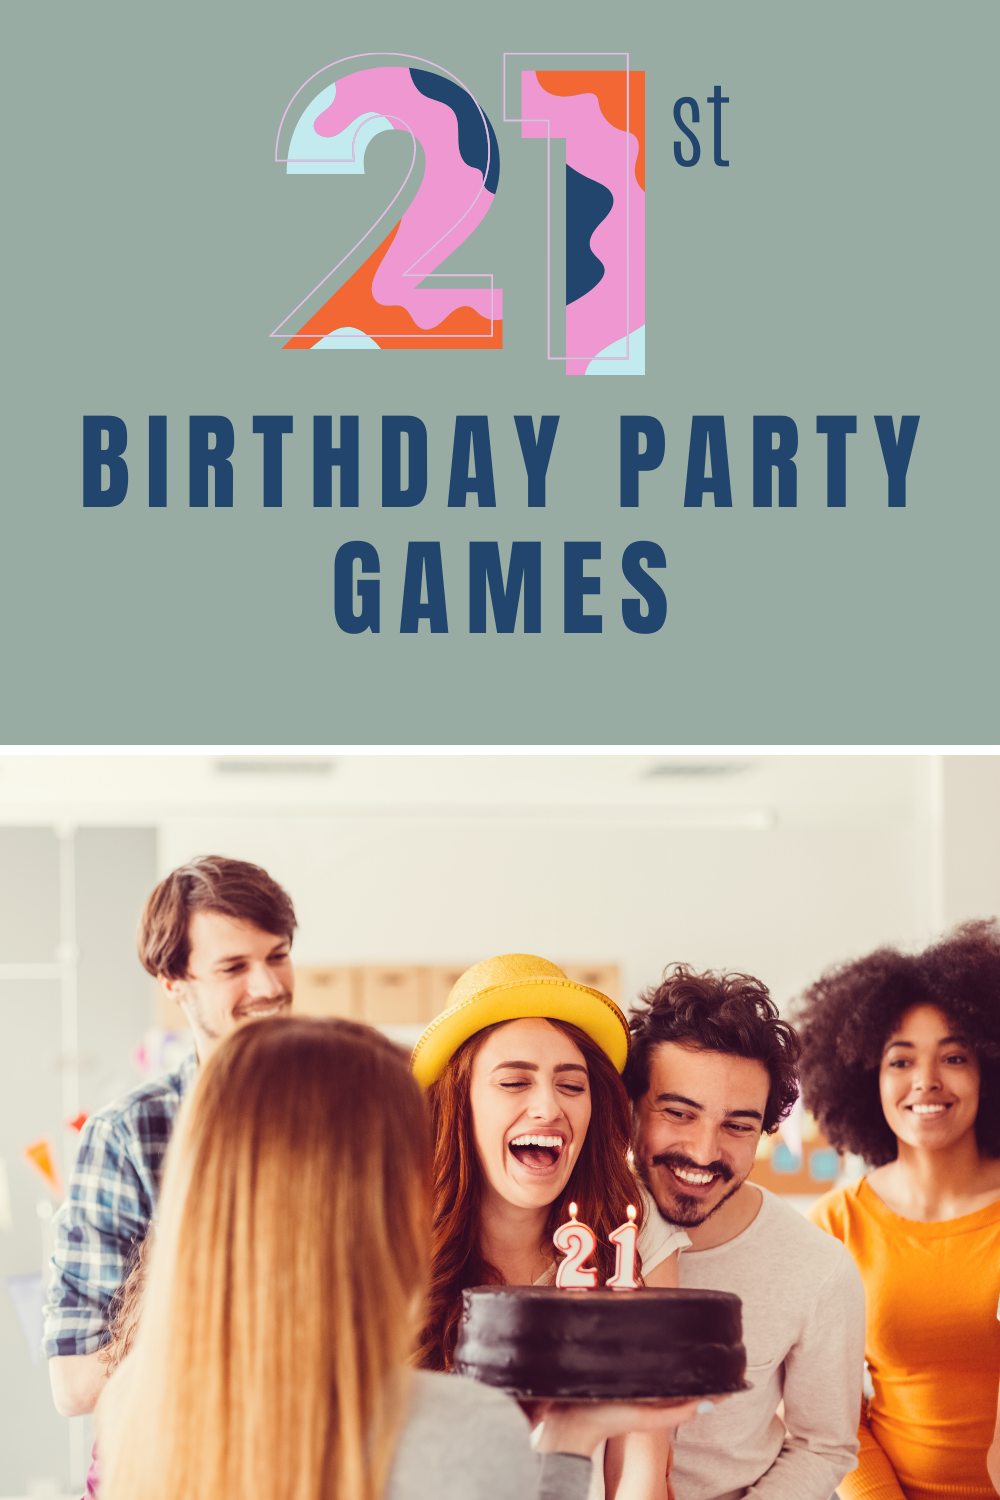 21st Birthday Party Games